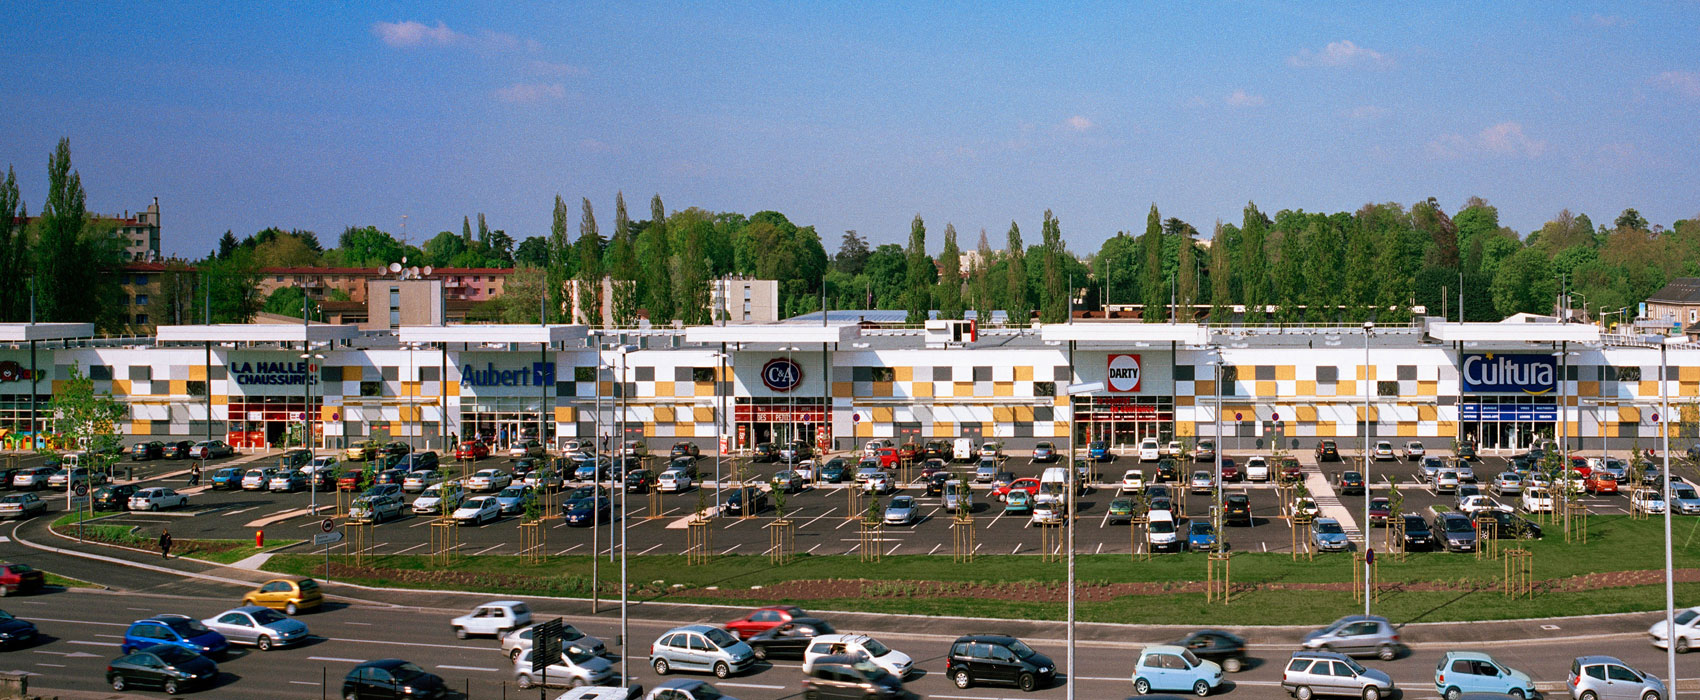 carrefour de l'europe bourg-en-bresse